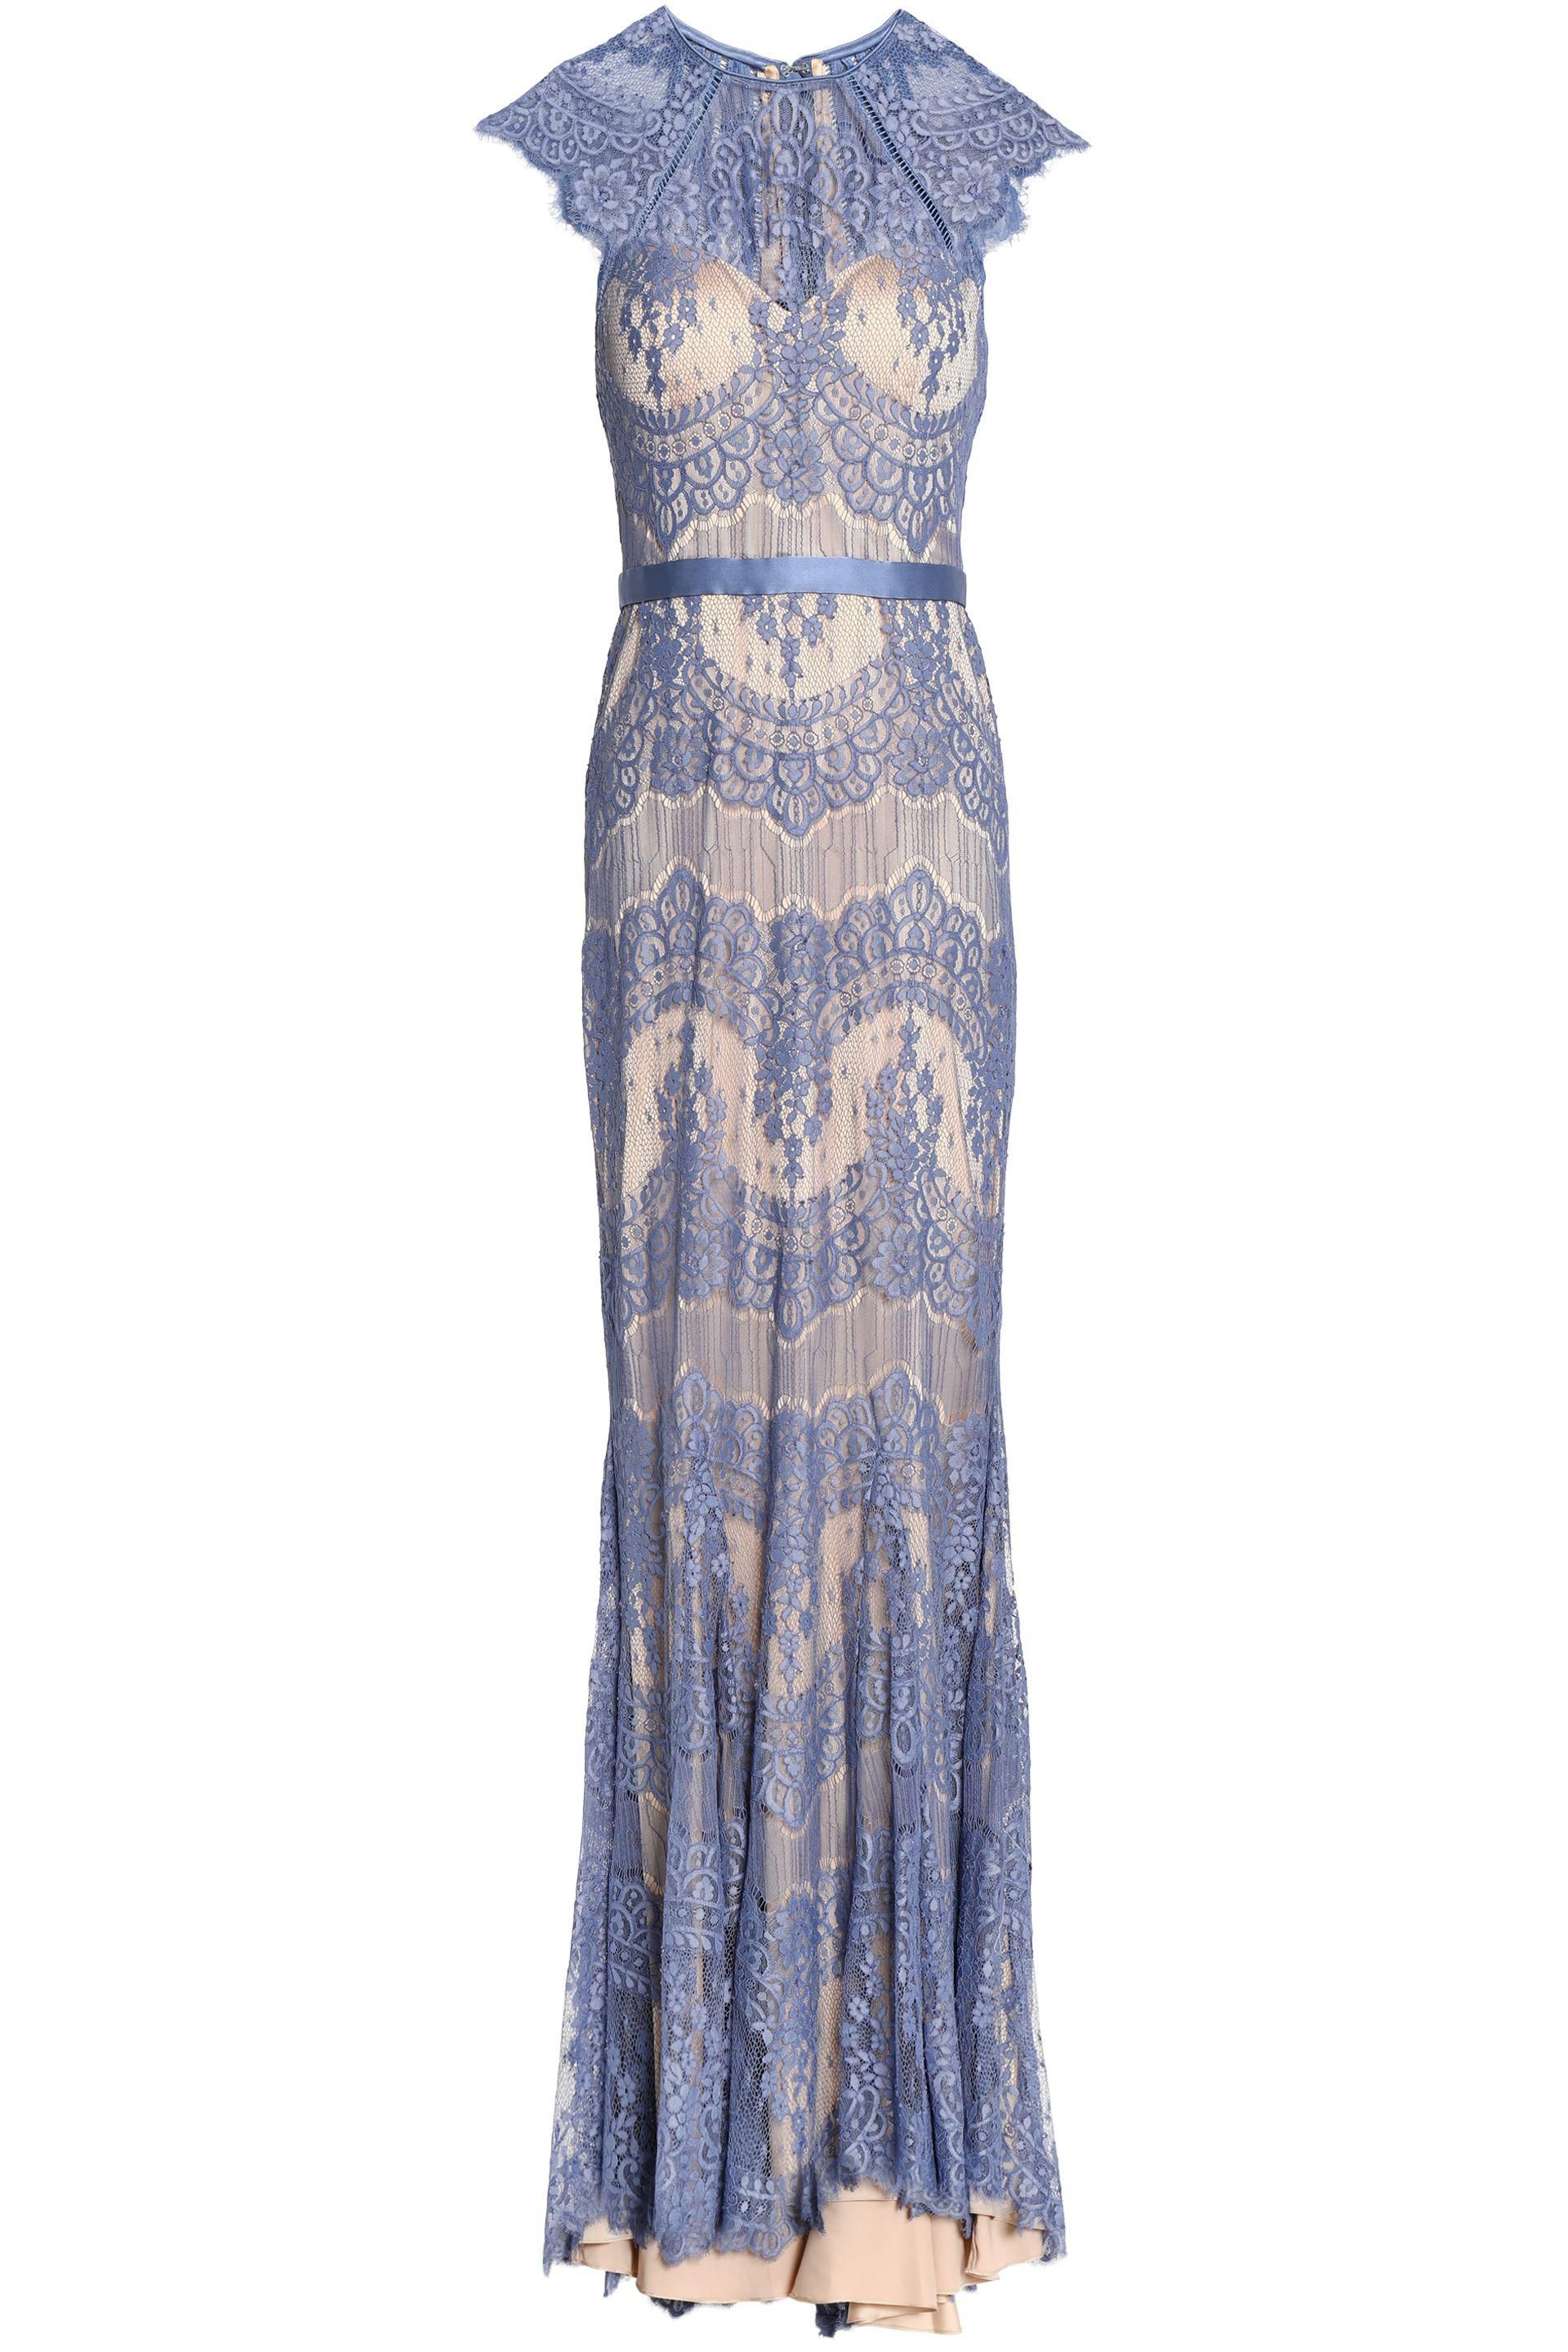 Lyst - Catherine Deane Idella Satin-trimmed Ruffled Corded Lace Gown ...